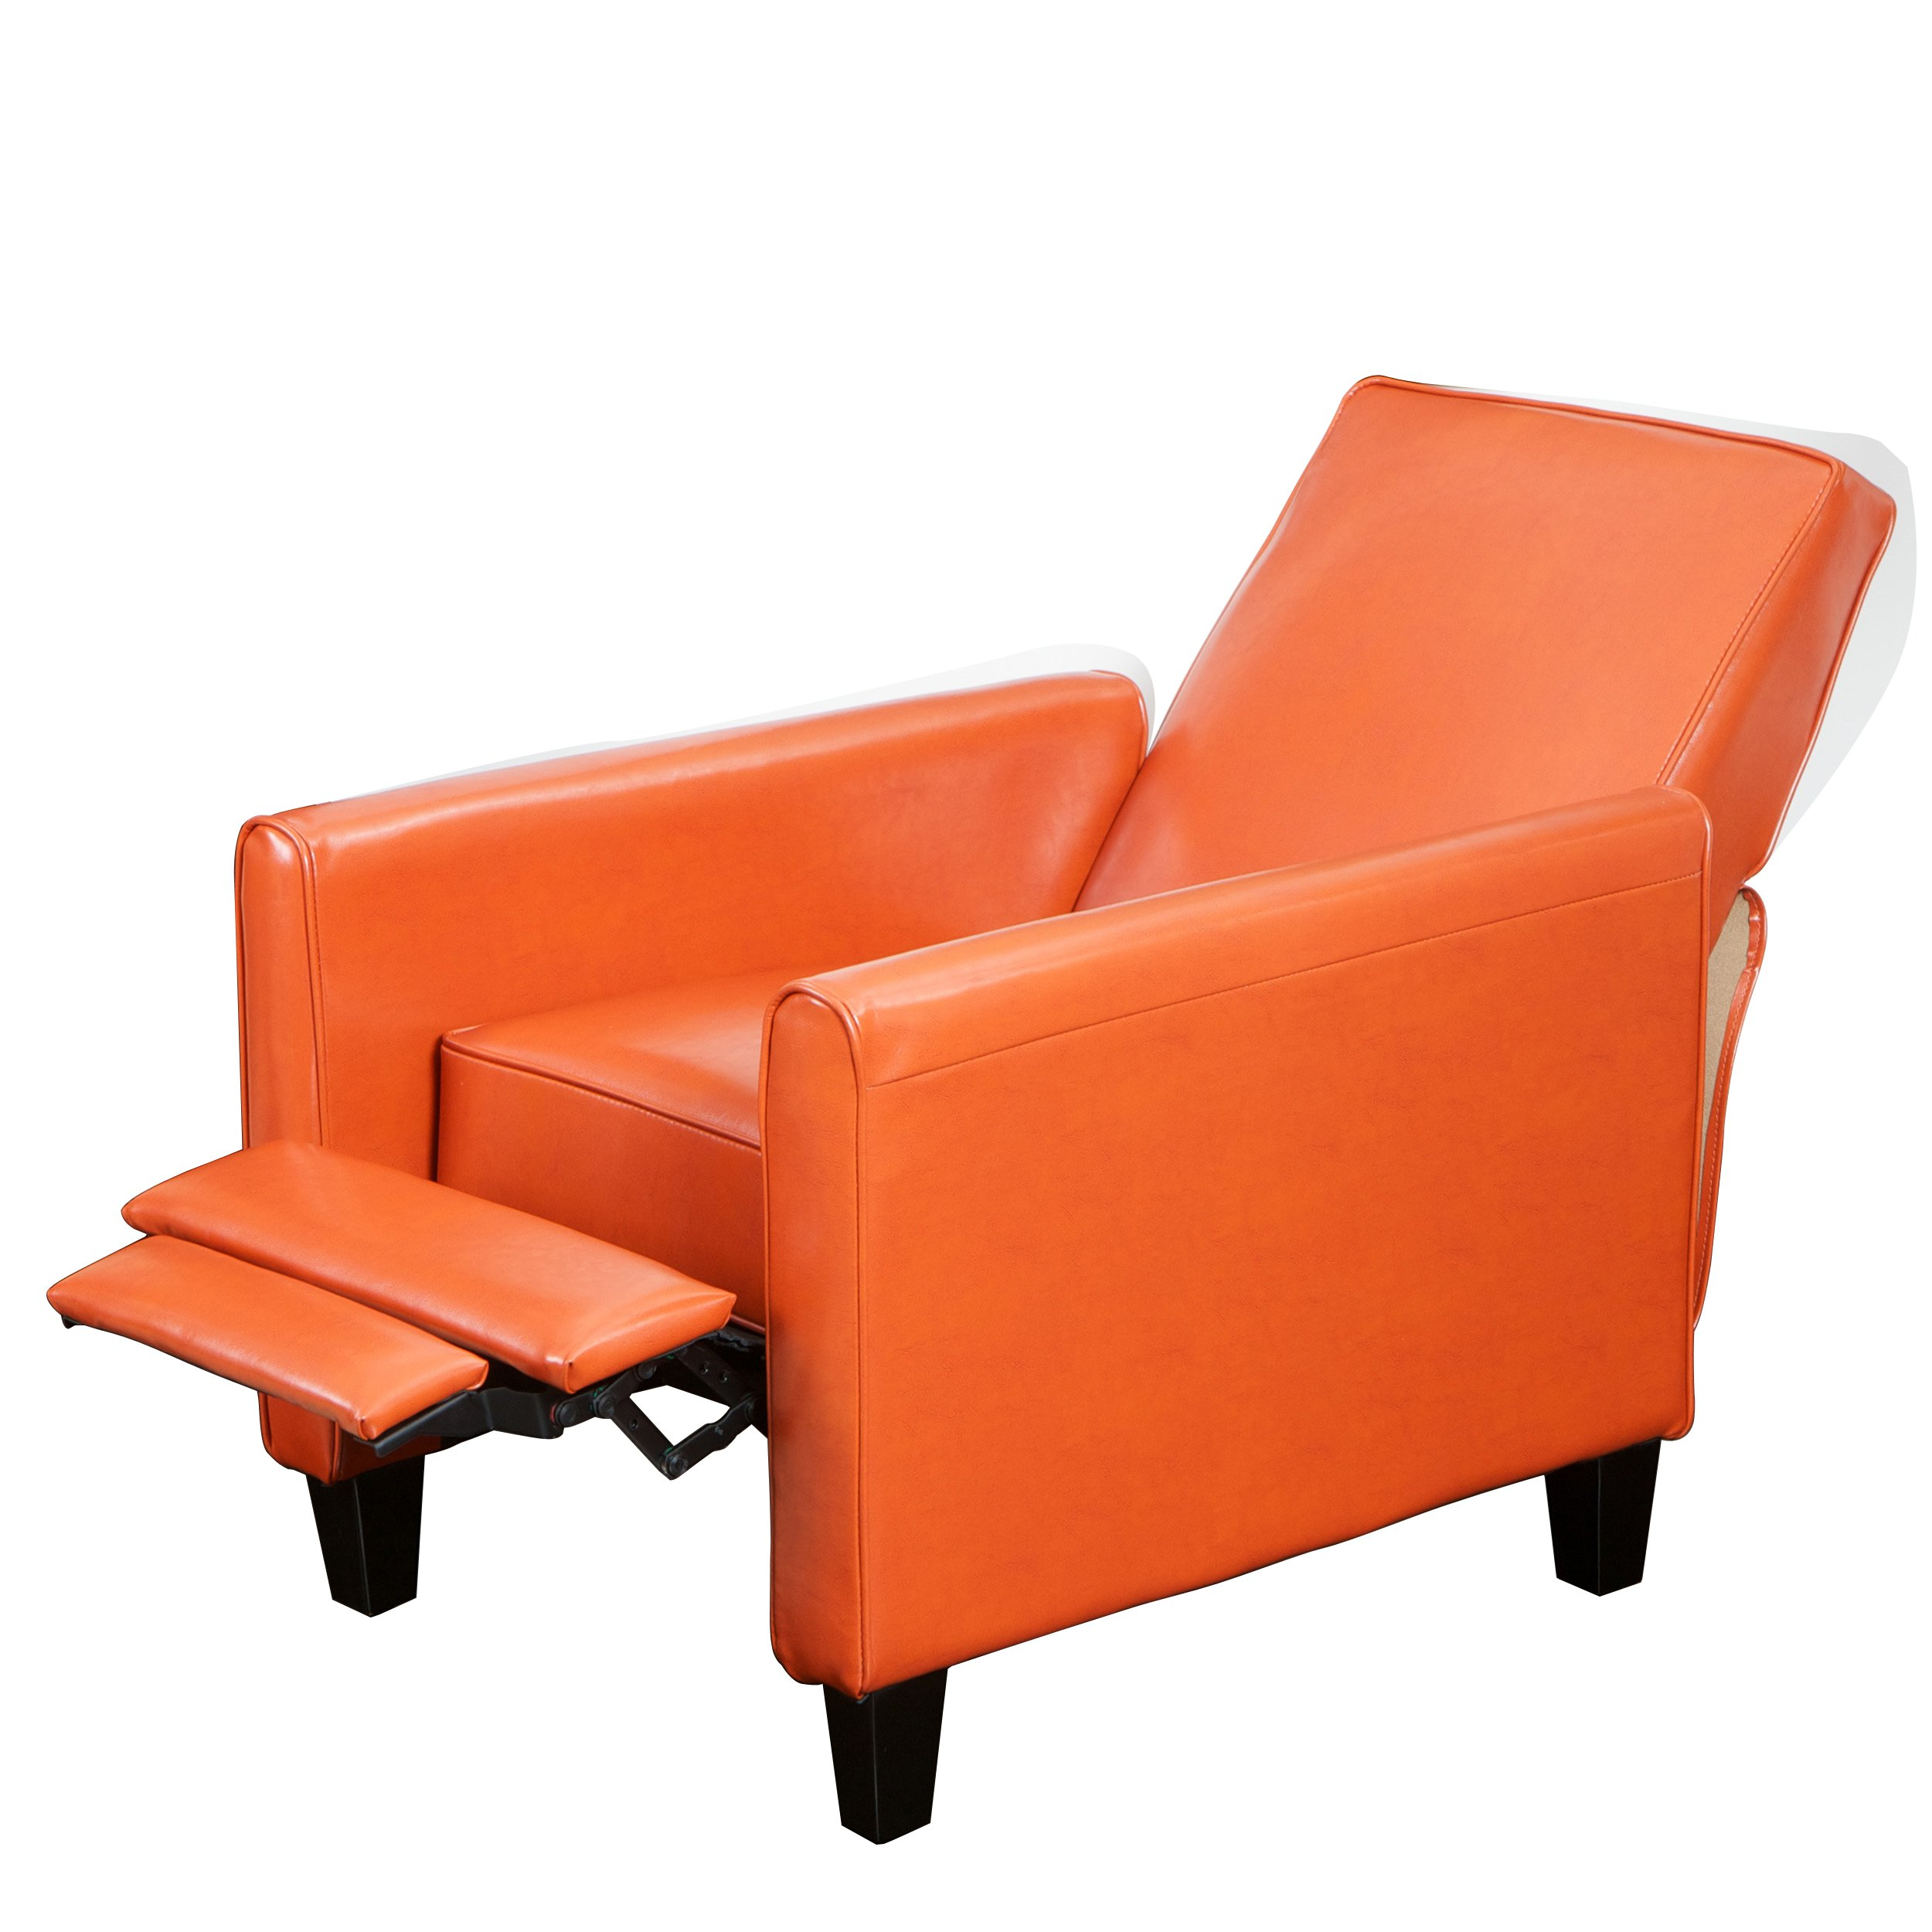 This fabulous recliner chair for small spaces is both sleek and comfortable im a traditionalist at heart but i love the funky modern look of the davis